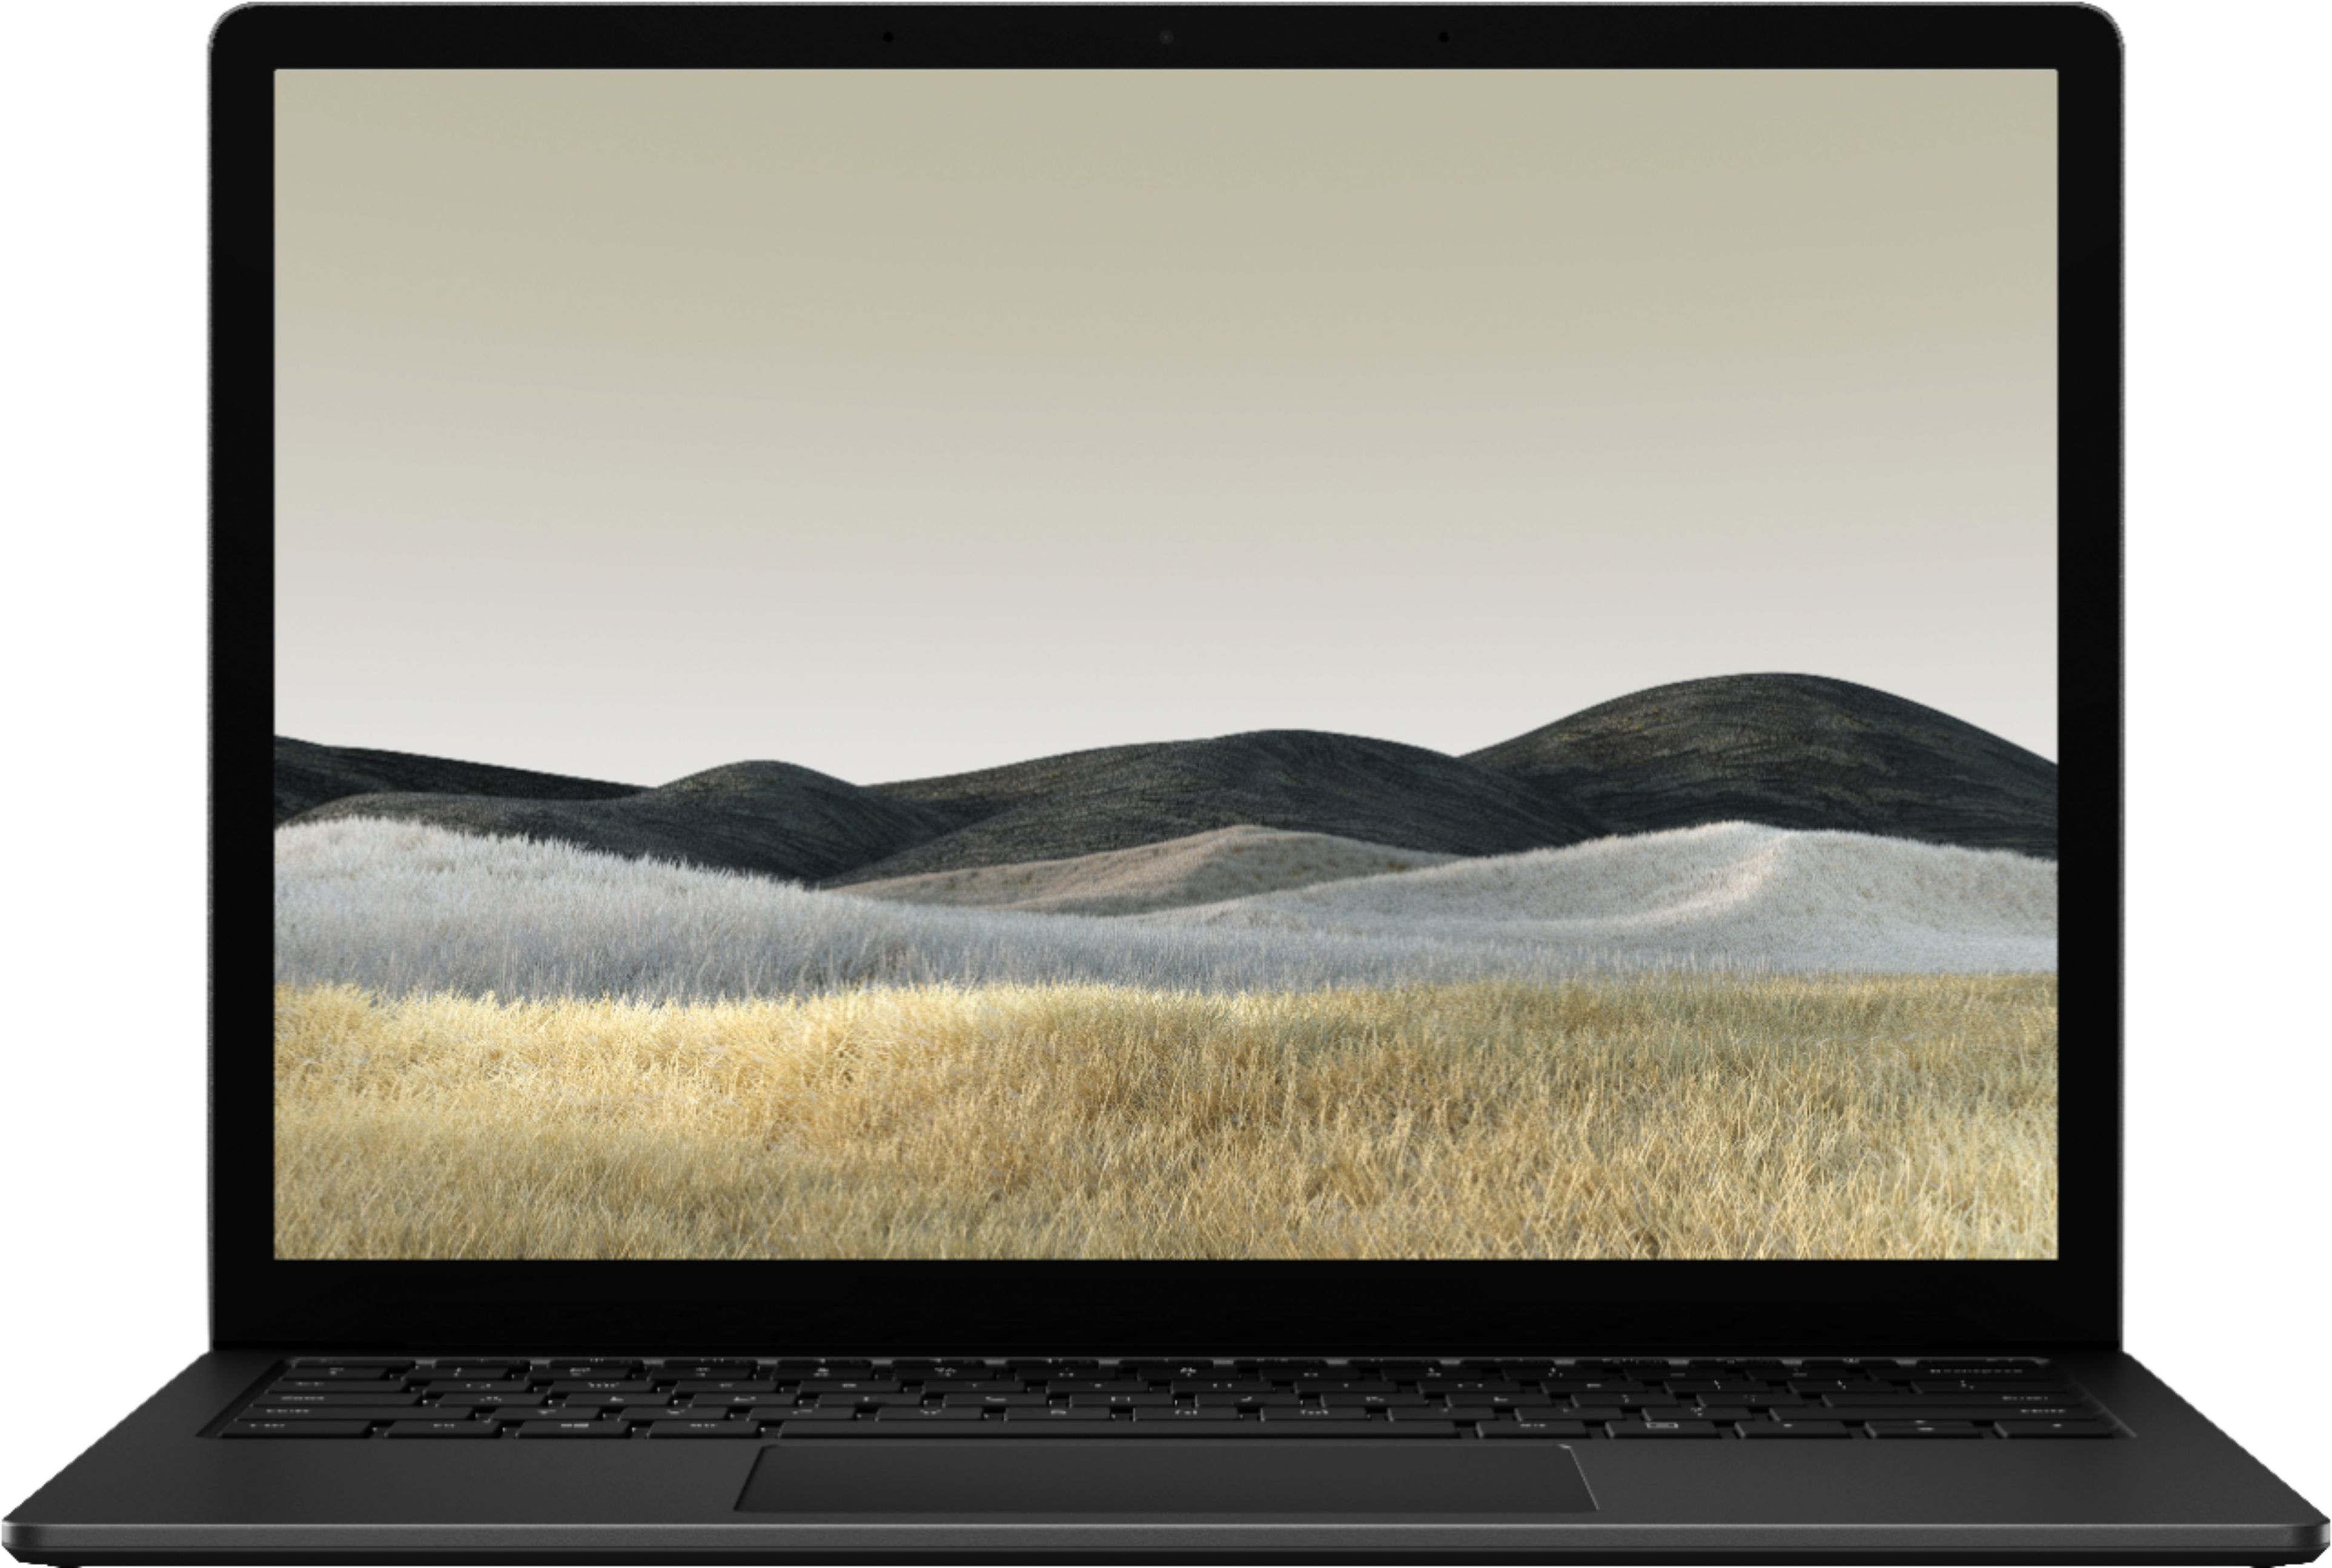 """Alt View Zoom 11. Microsoft - Surface Laptop 3 - 13.5"""" Touch-Screen - Intel Core i7 - 16GB Memory - 1TB Solid State Drive (Latest Model) - Matte Black."""